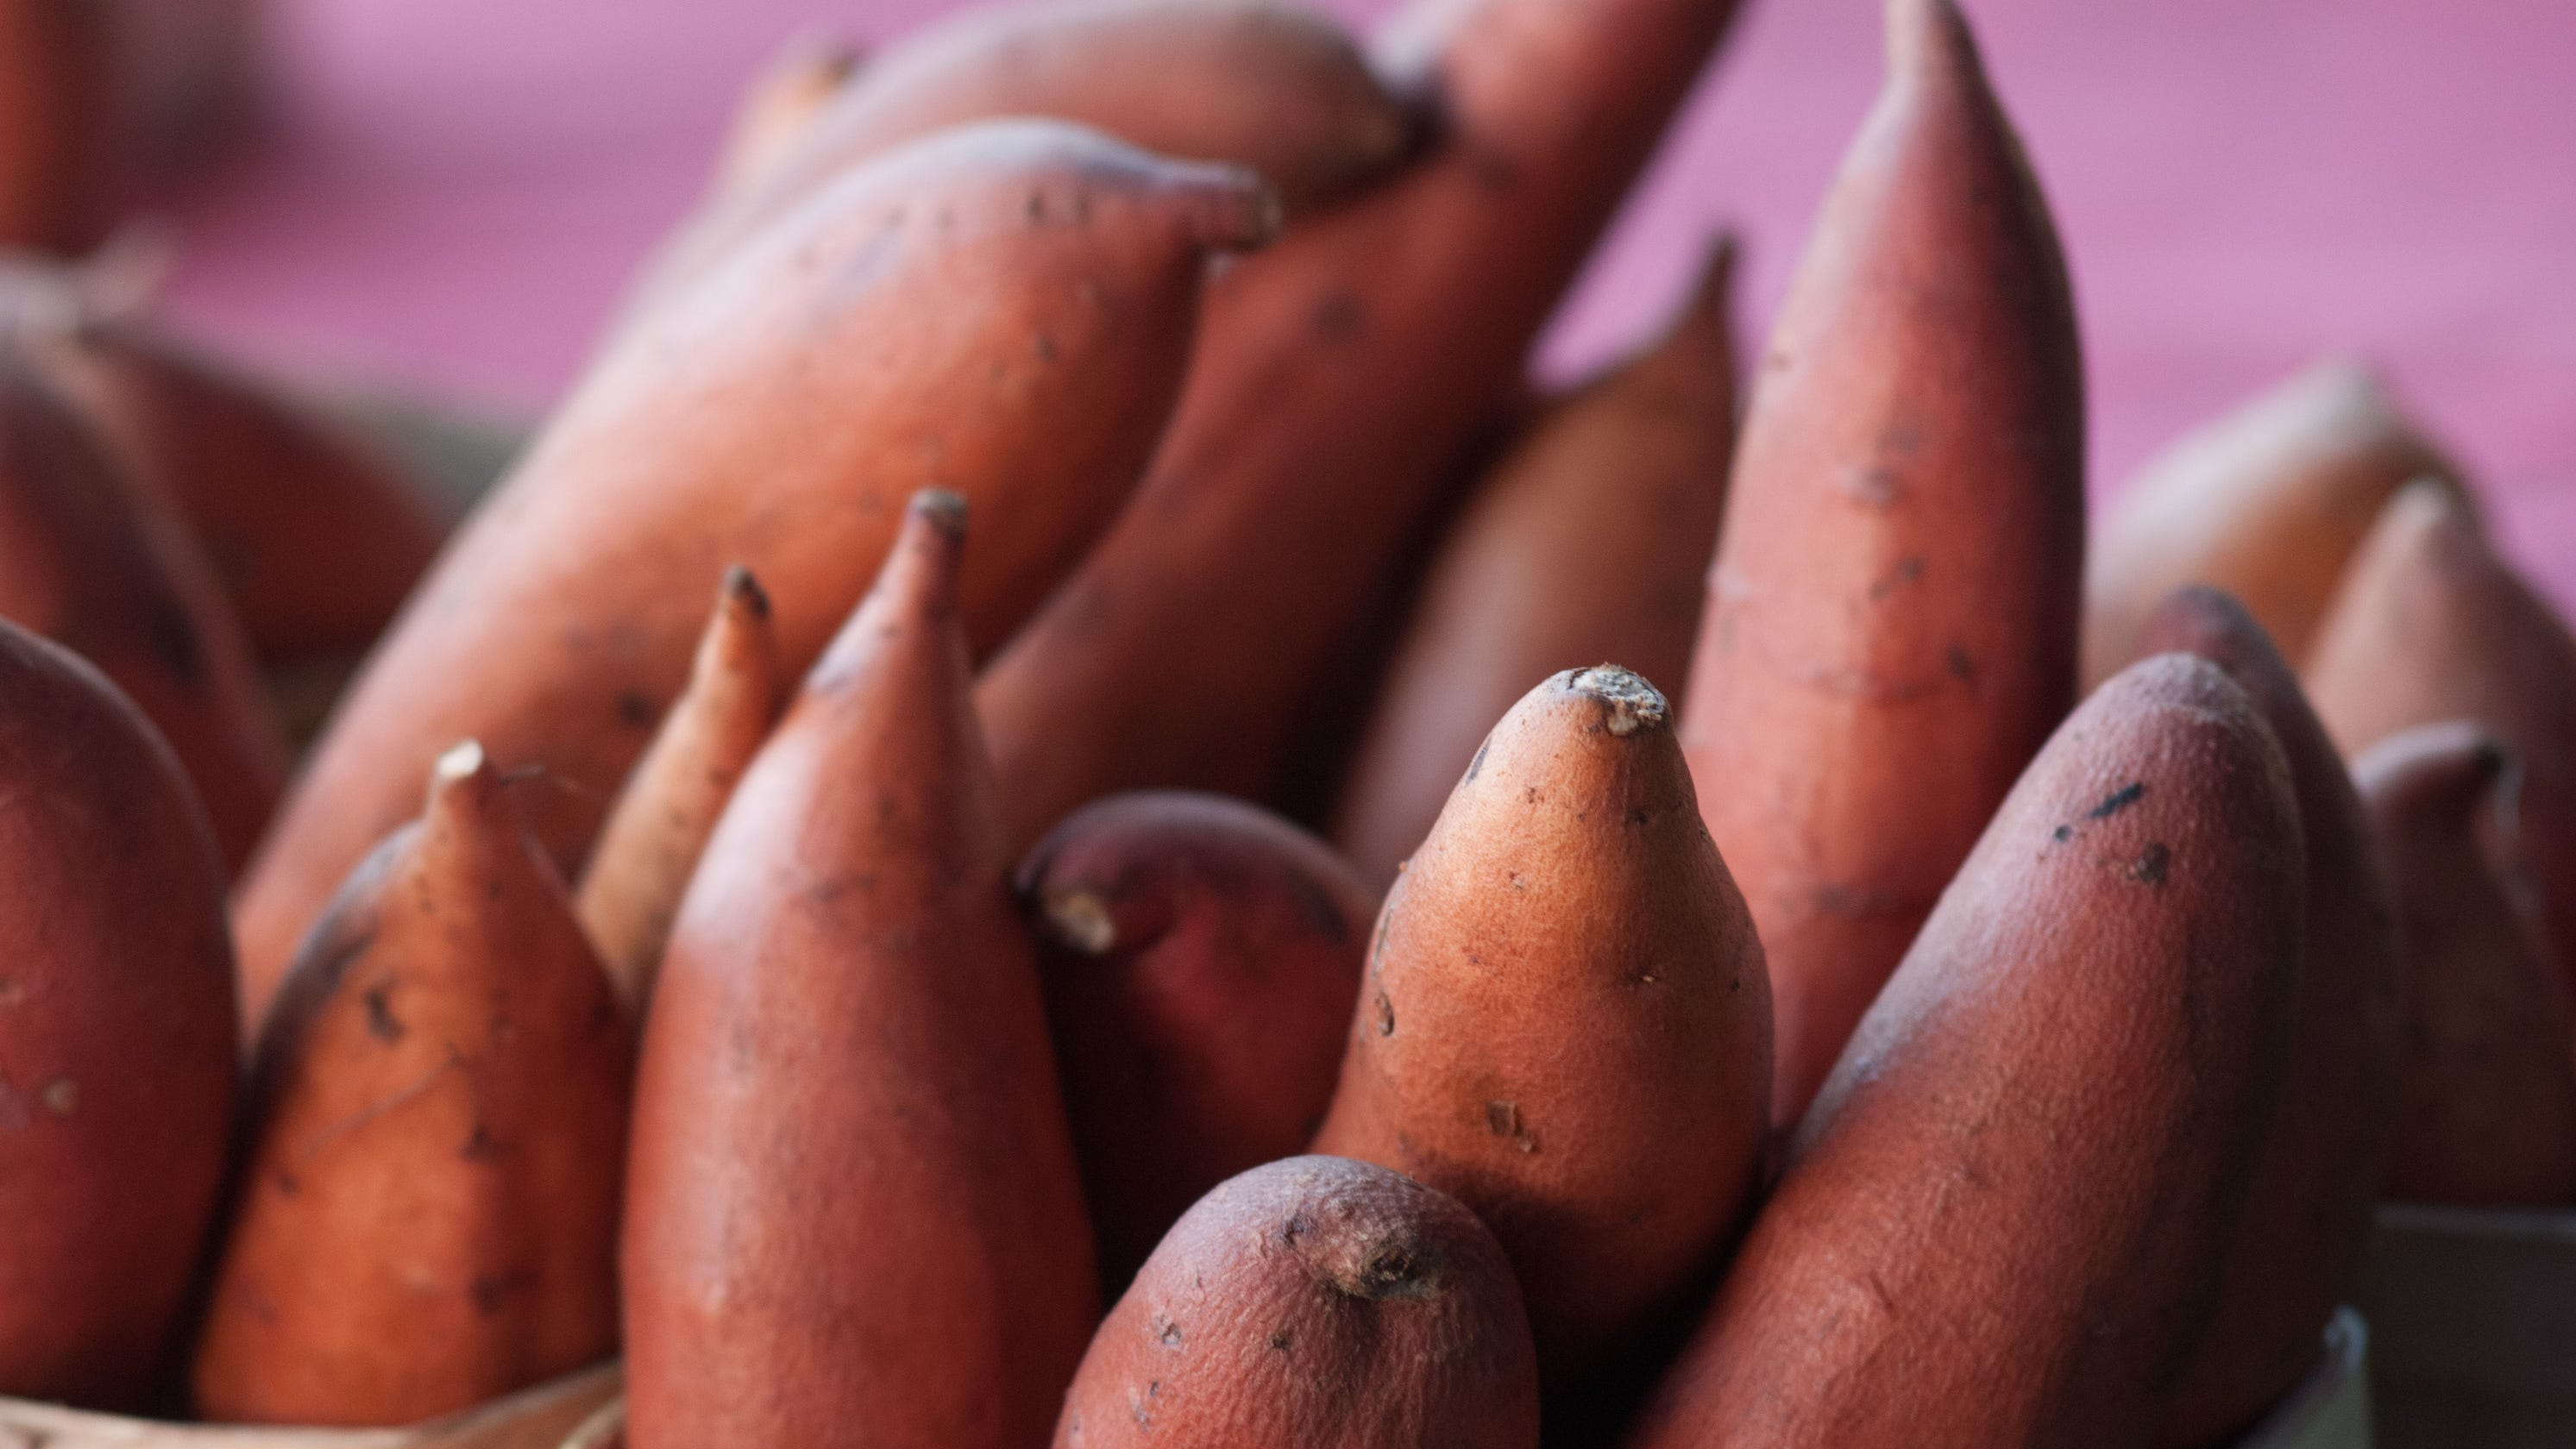 Are yams and sweet potatoes the same? 5 questions answered about the favorite fall food